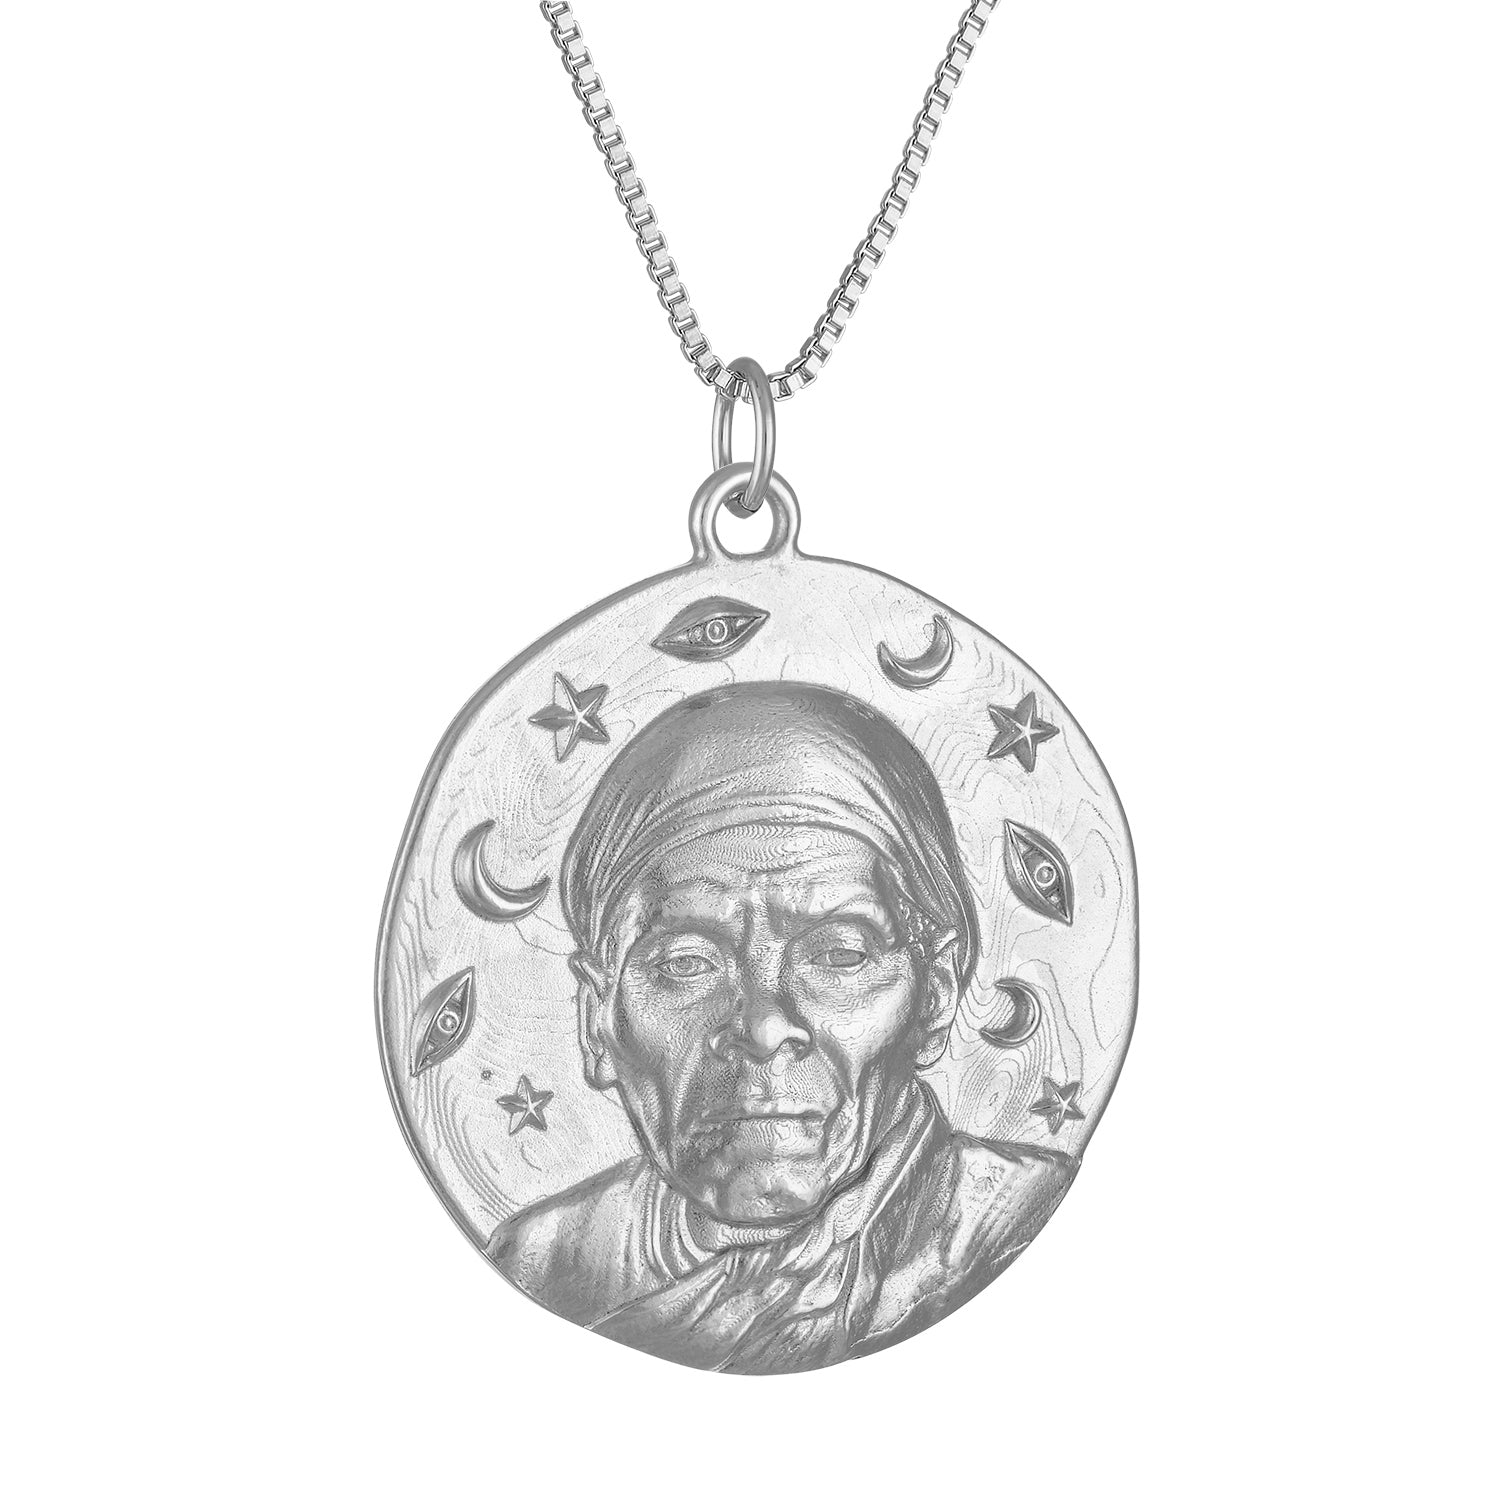 Harriet Tubman Small Round Medallion